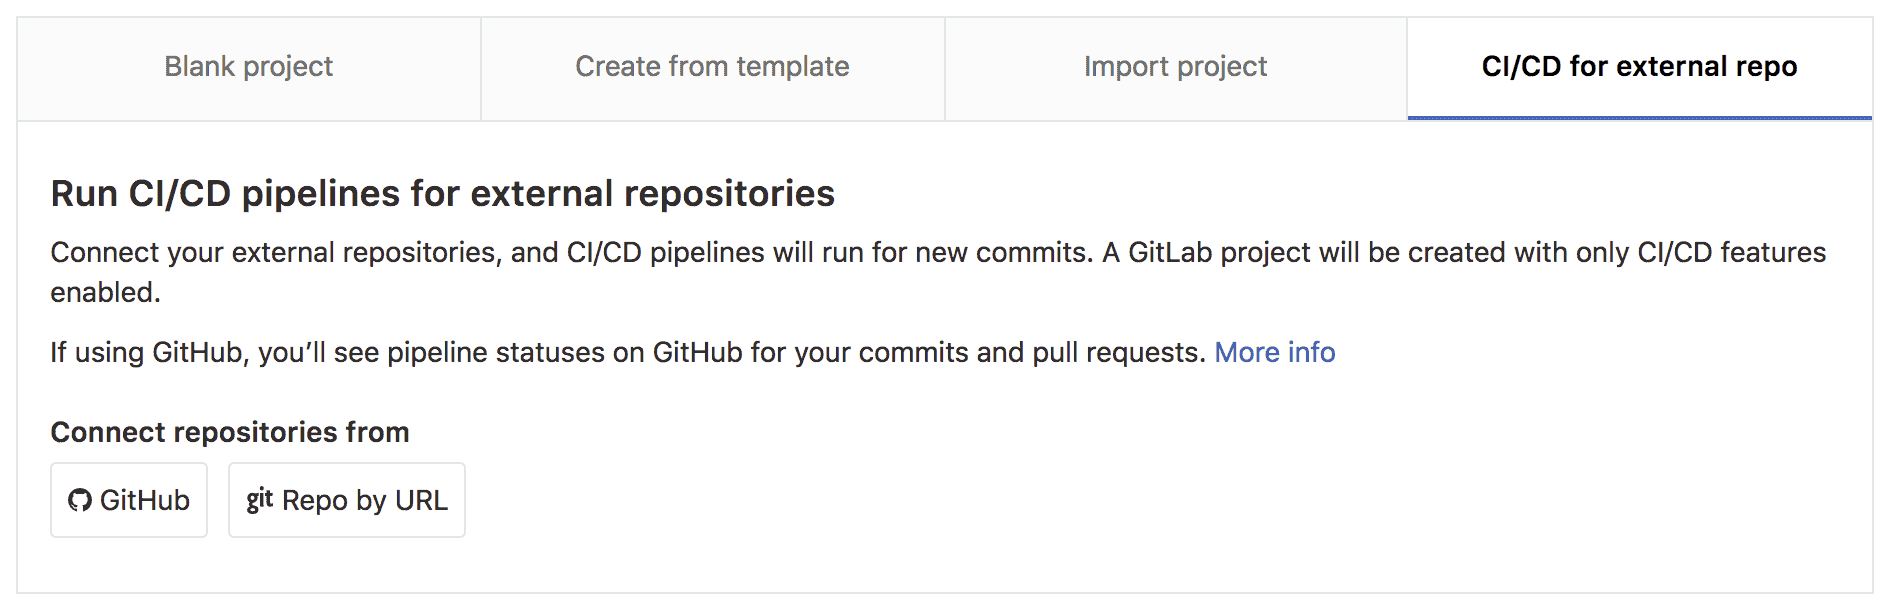 GitLab CI/CD for external repos